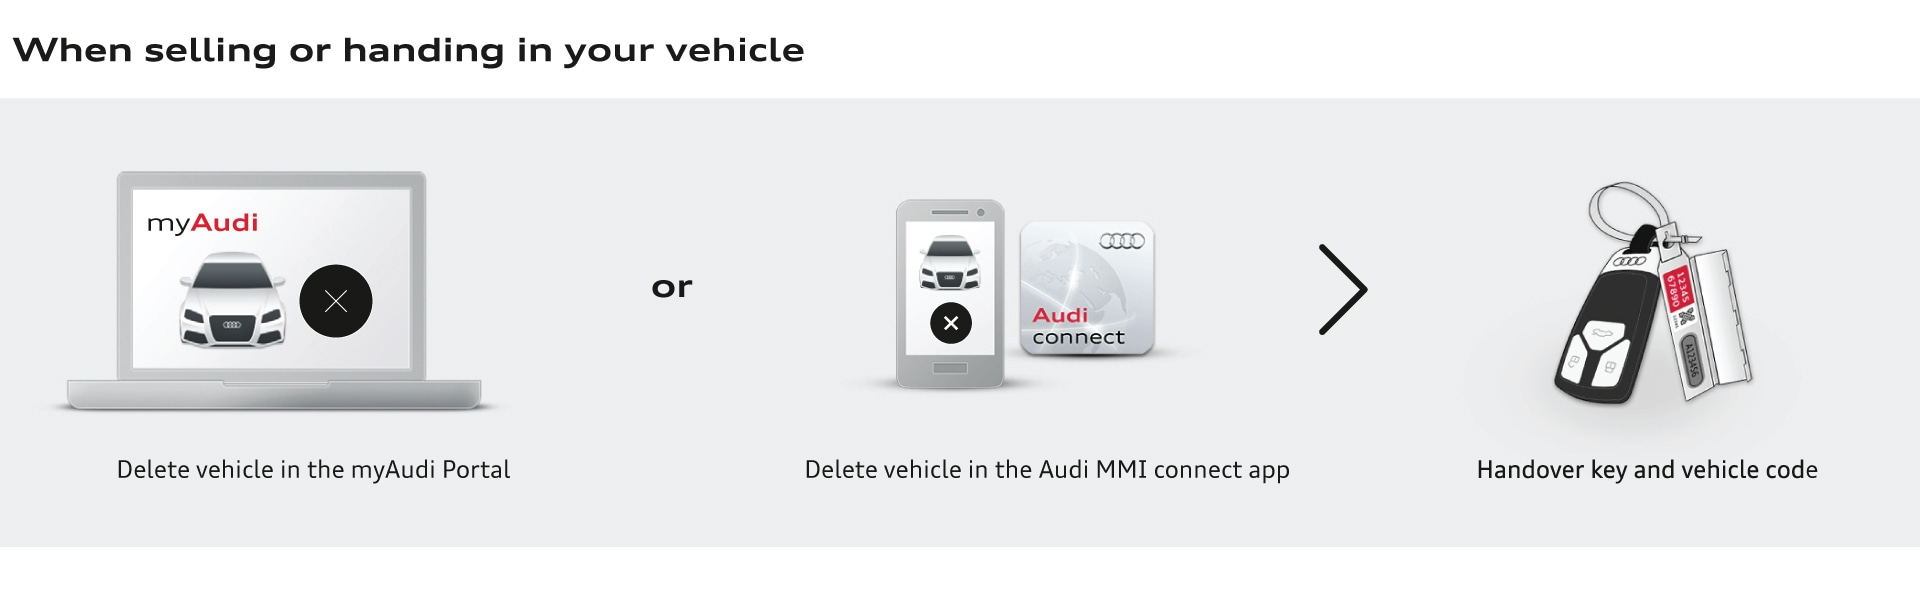 Audi Midtown Toronto New Audi Dealership In Toronto ON MJ R - What is audi connect